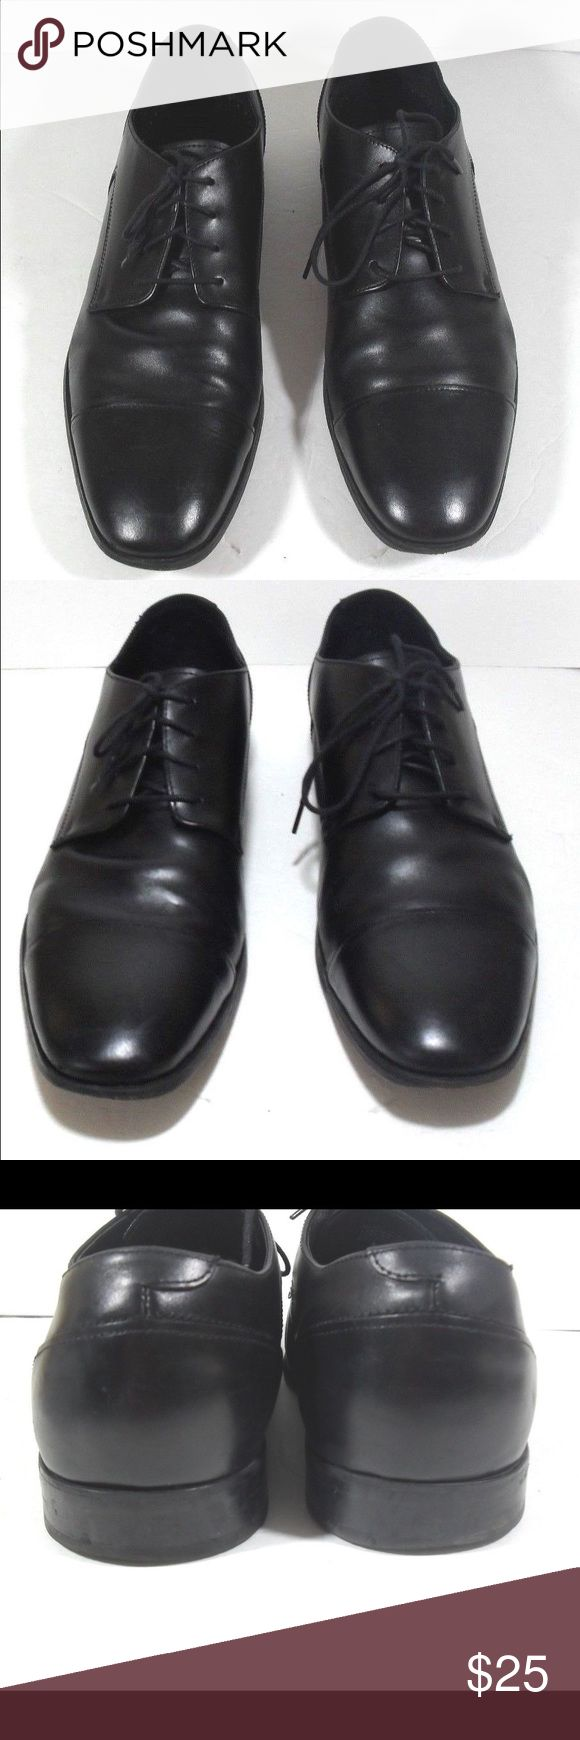 Florsheim Imperial Leather Lace up Oxfords Florsheim Imperial Size 13D Black Lace Up Oxford Dress Shoes-Great condition, pre-owned. Florsheim Shoes Oxfords & Derbys